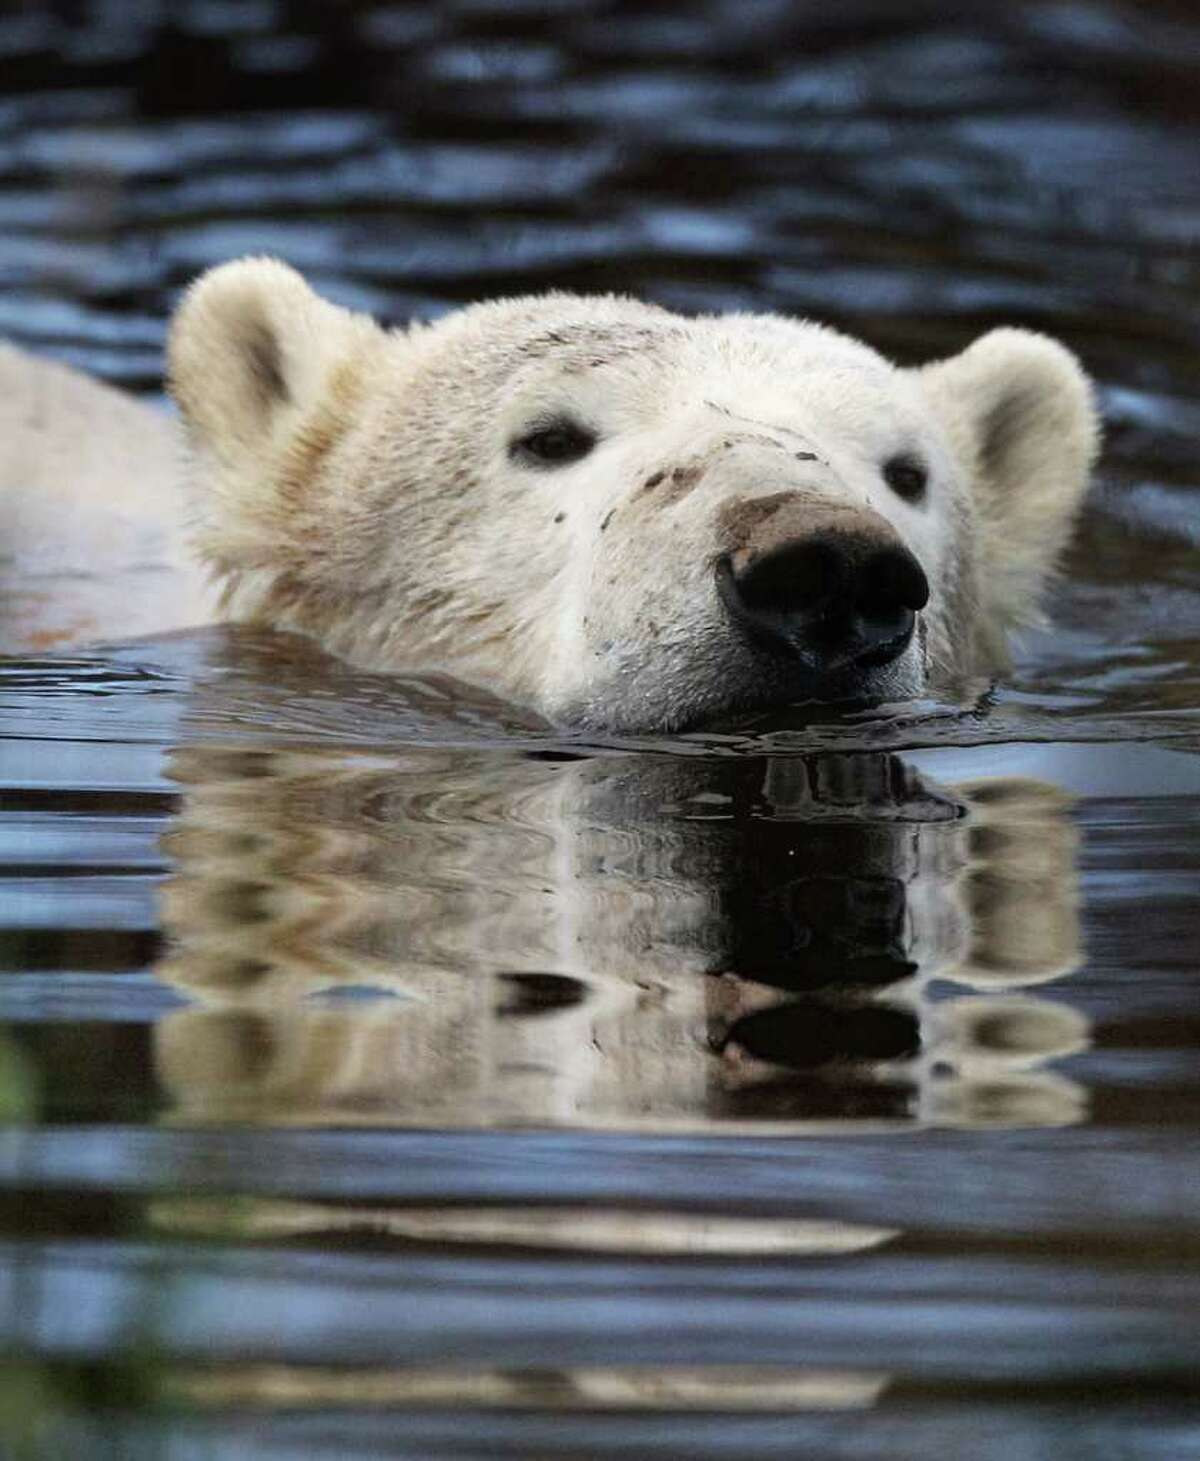 KINGUSSIE, UNITED KINGDOM - NOVEMBER 12: 23-month-old Walker the new polar bear at Highland Wildlife Park has a swim before meeting with 30-year-old Mercedes for the first time on November 12, 2010 in Kingussie, Scotland. The bears were both released today into the 4 acre main enclosure which will be their home.. (Photo by Jeff J Mitchell/Getty Images)